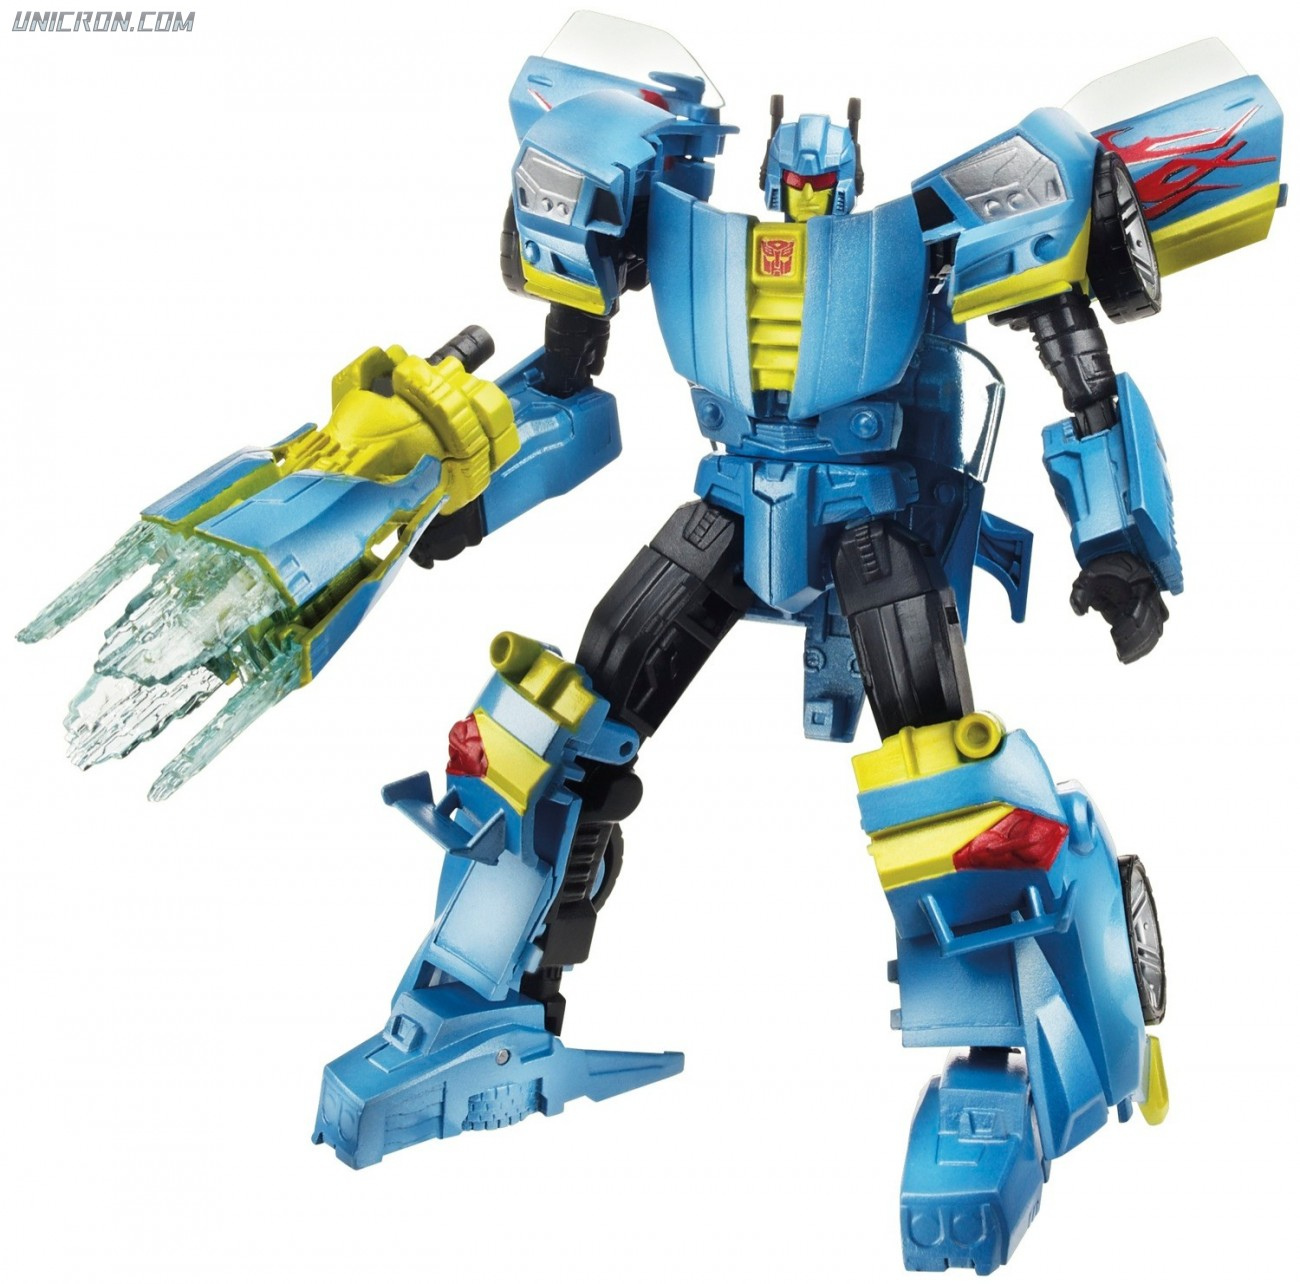 Transformers Generations Nightbeat toy